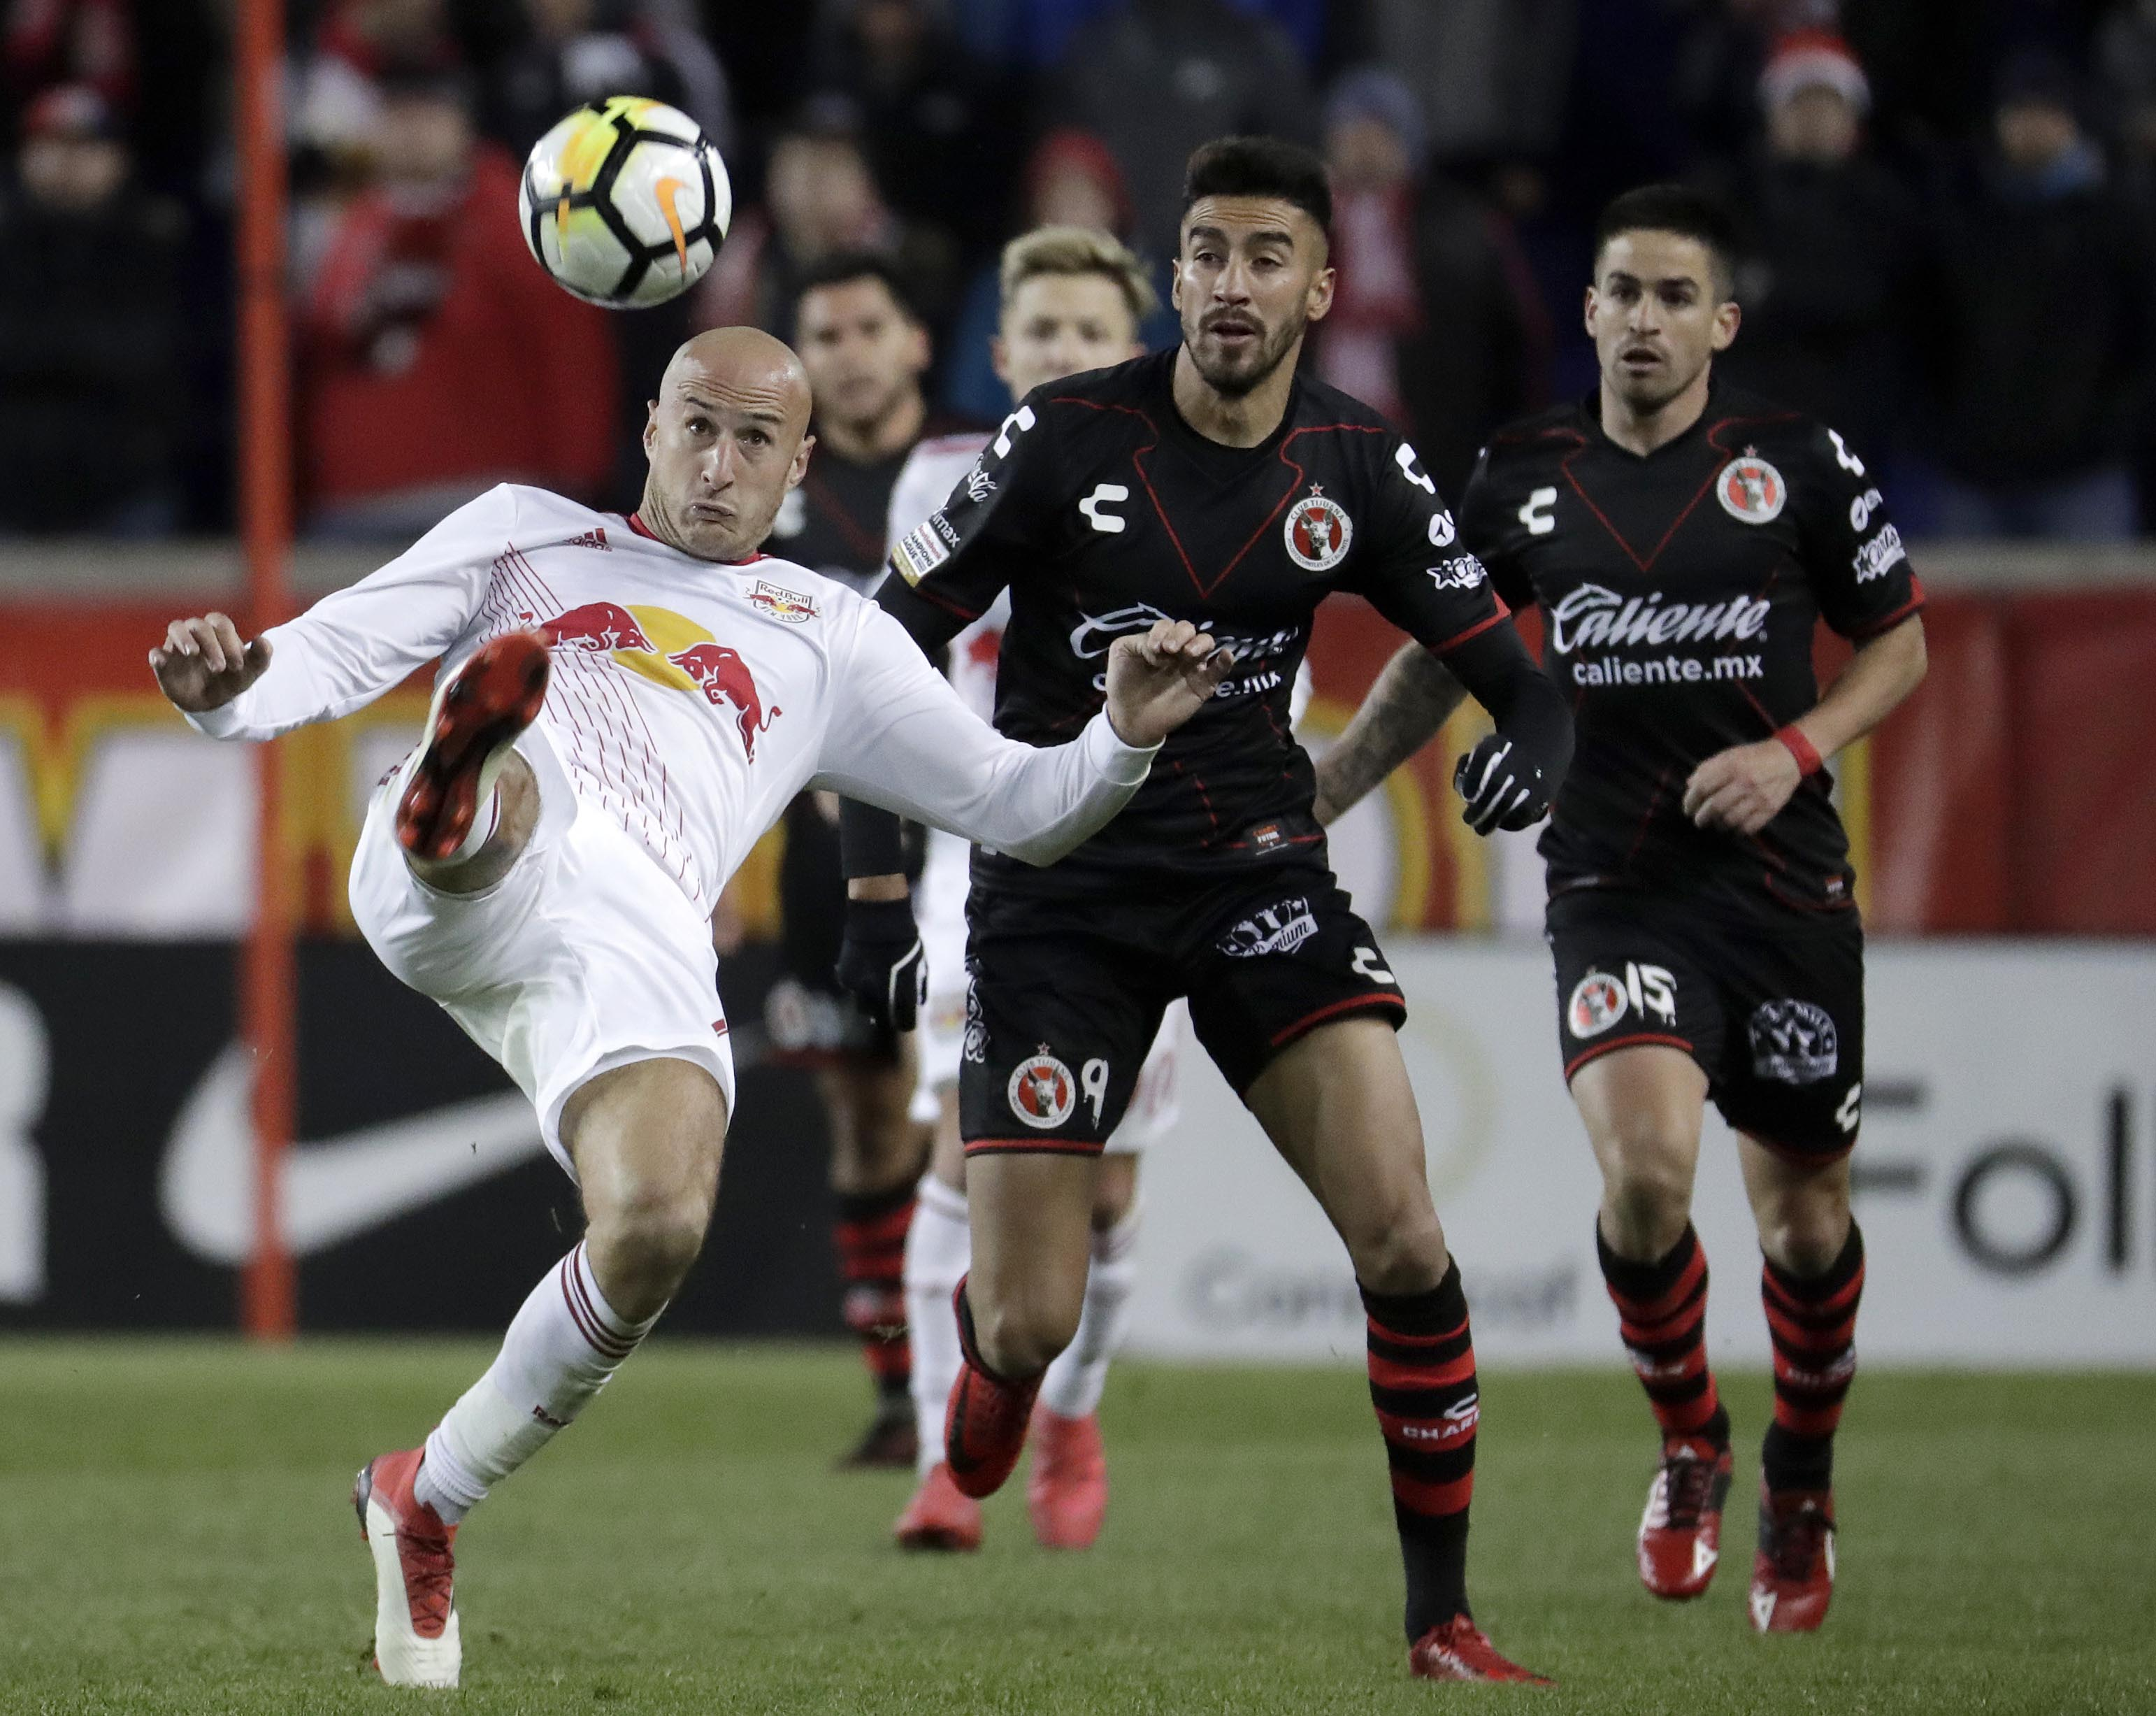 New York Red Bulls defender Aurelien Collin (front) tries to clear the ball away as Tijuana forward Juan Martin Lucero (center) and defender Damian Perez look on during the second half of a CONCACAF Champions League quarterfinal soccer match on Tuesday in Harrison, N.J. The Red Bulls won 3-1.